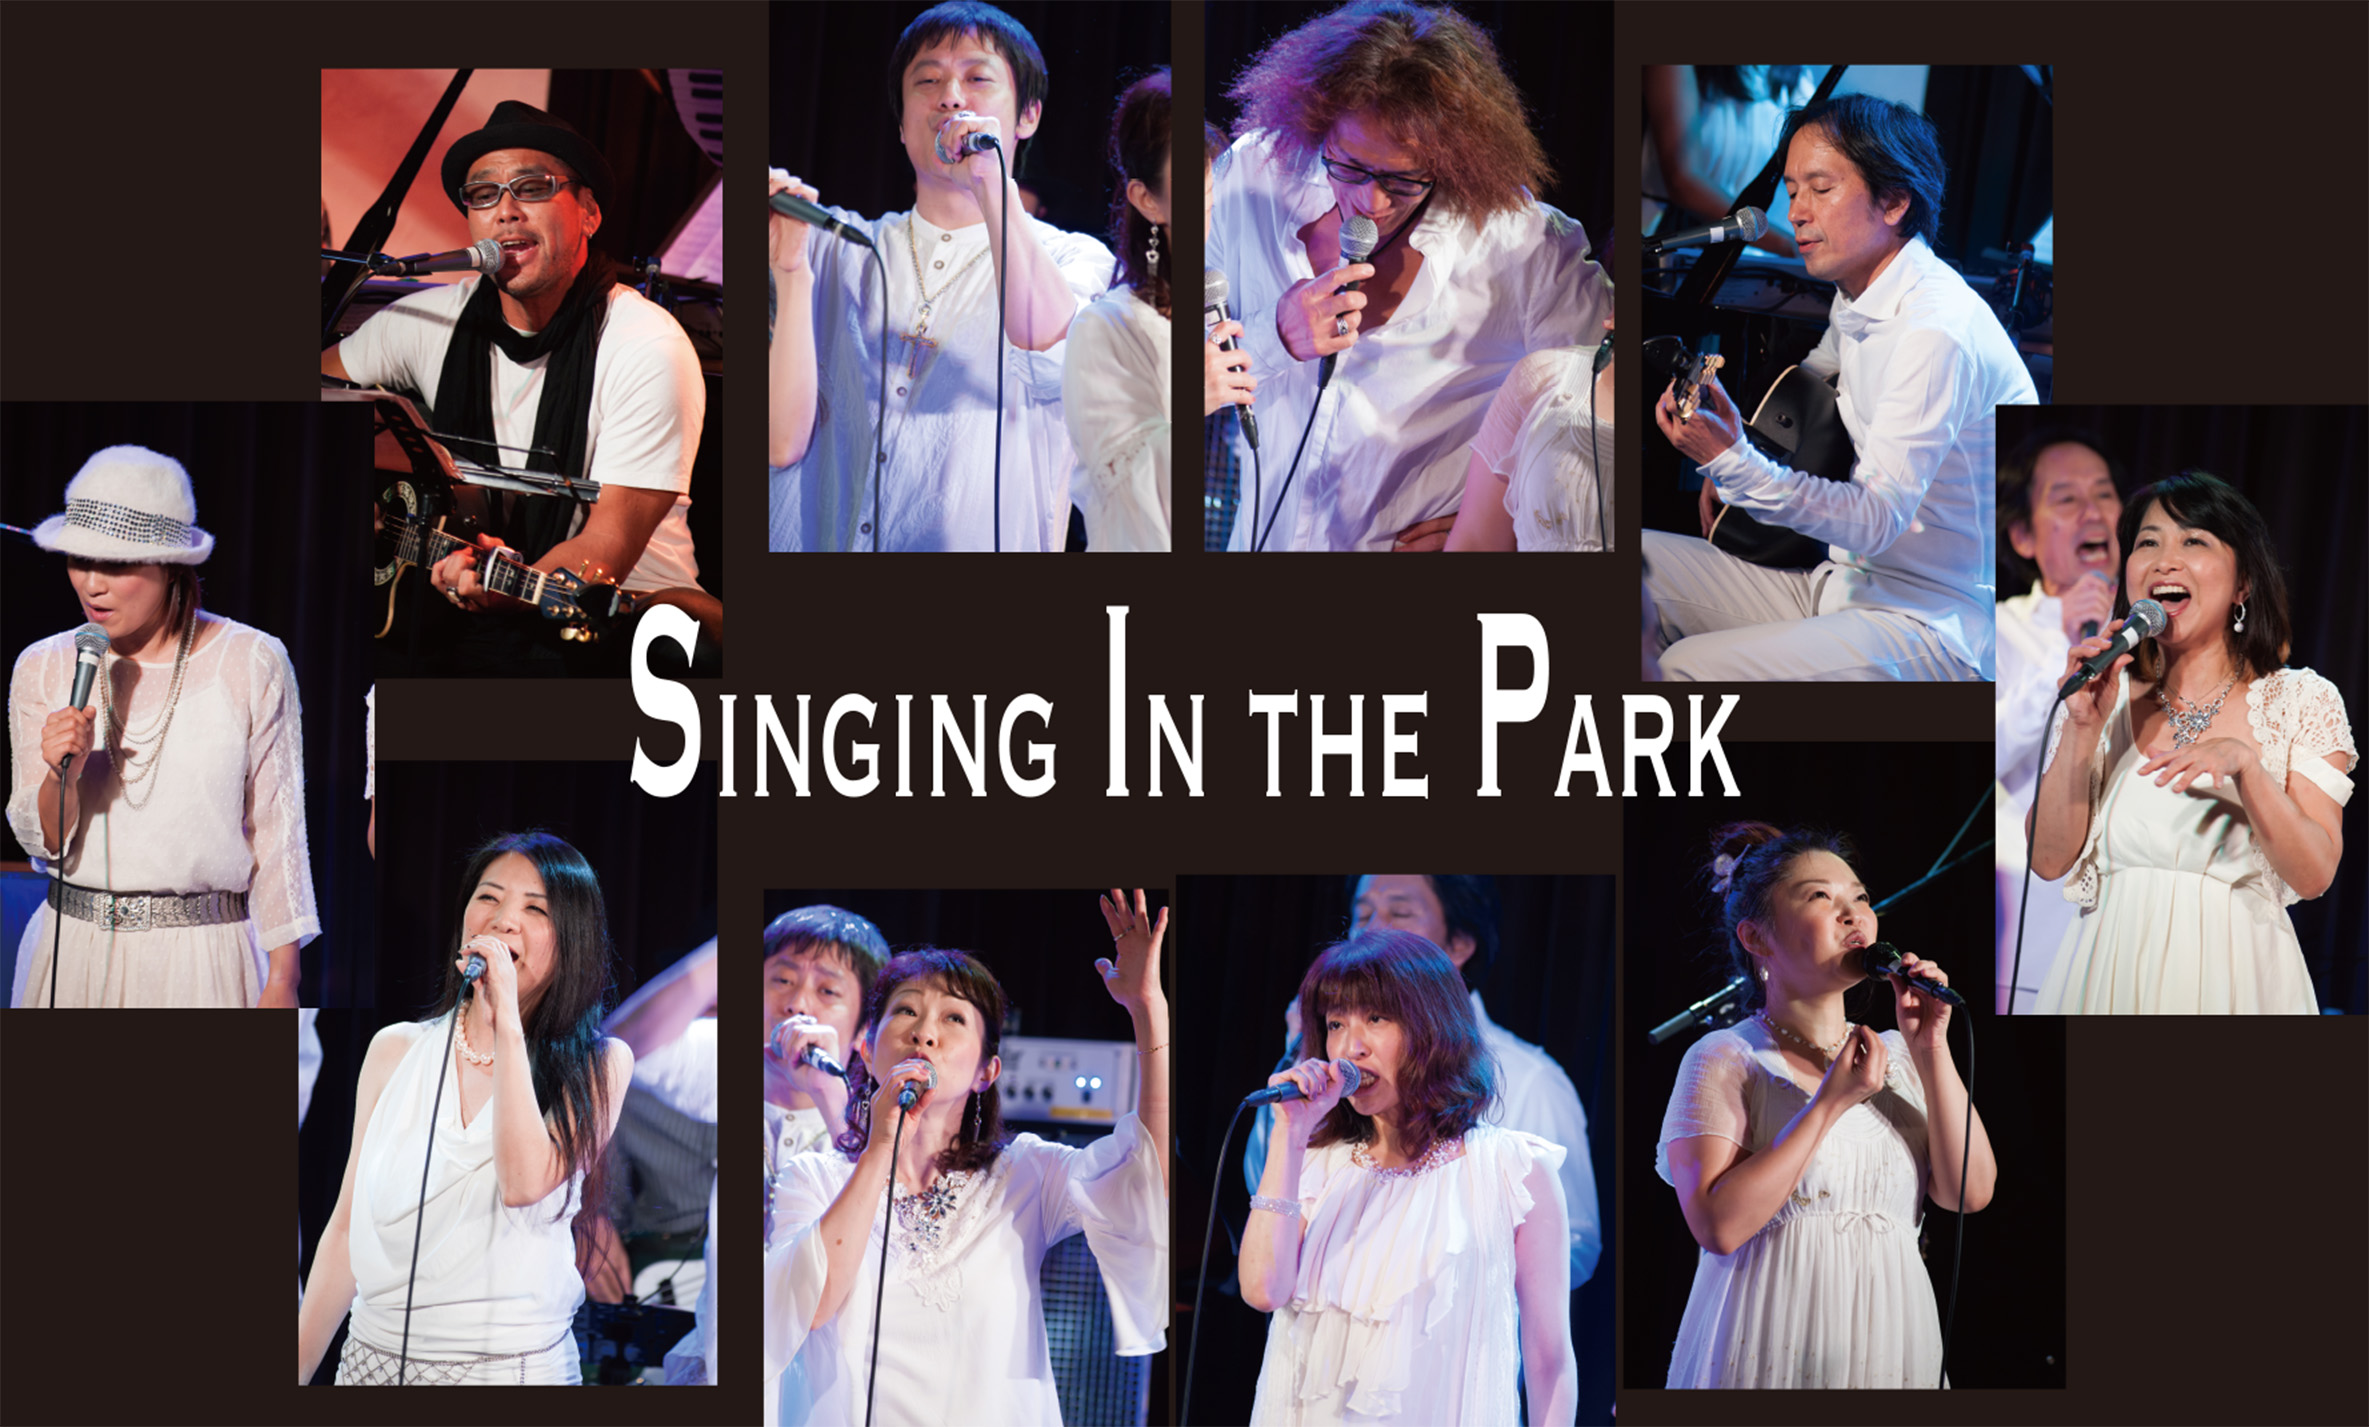 Singing In the Park 新しい10年へ